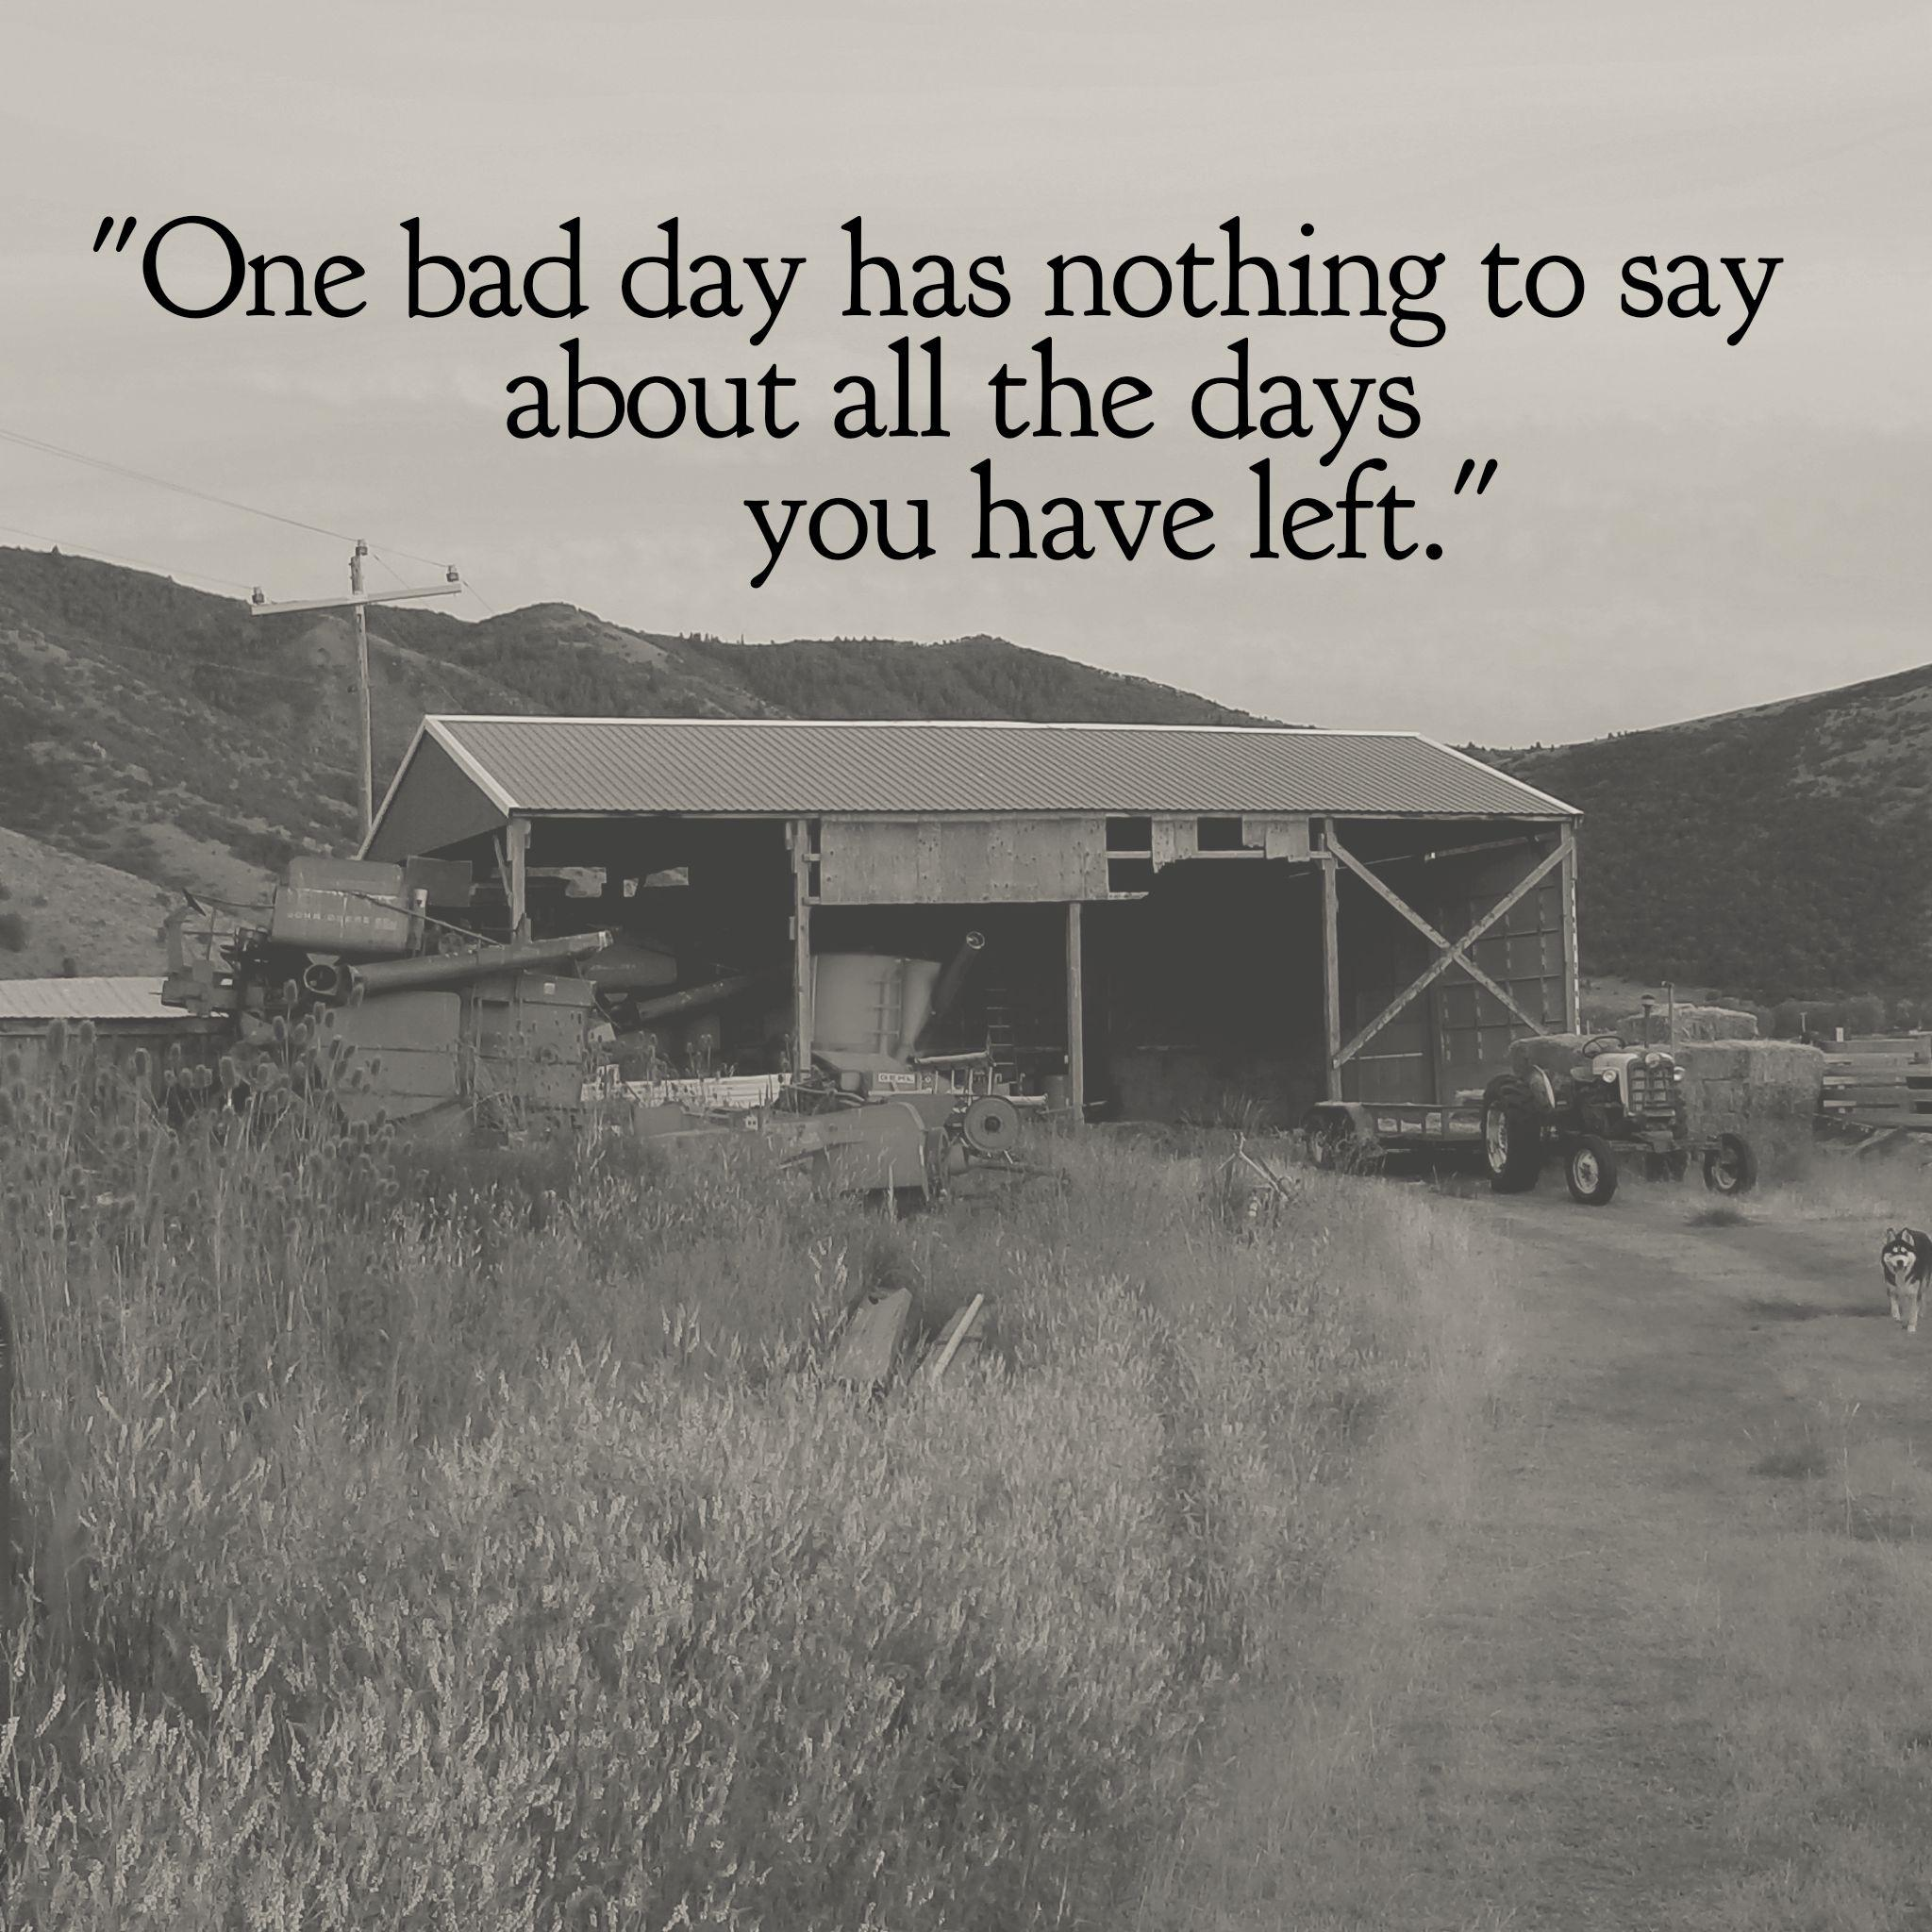 [Image] If I ever feel I'm having a bad day, I tell myself this